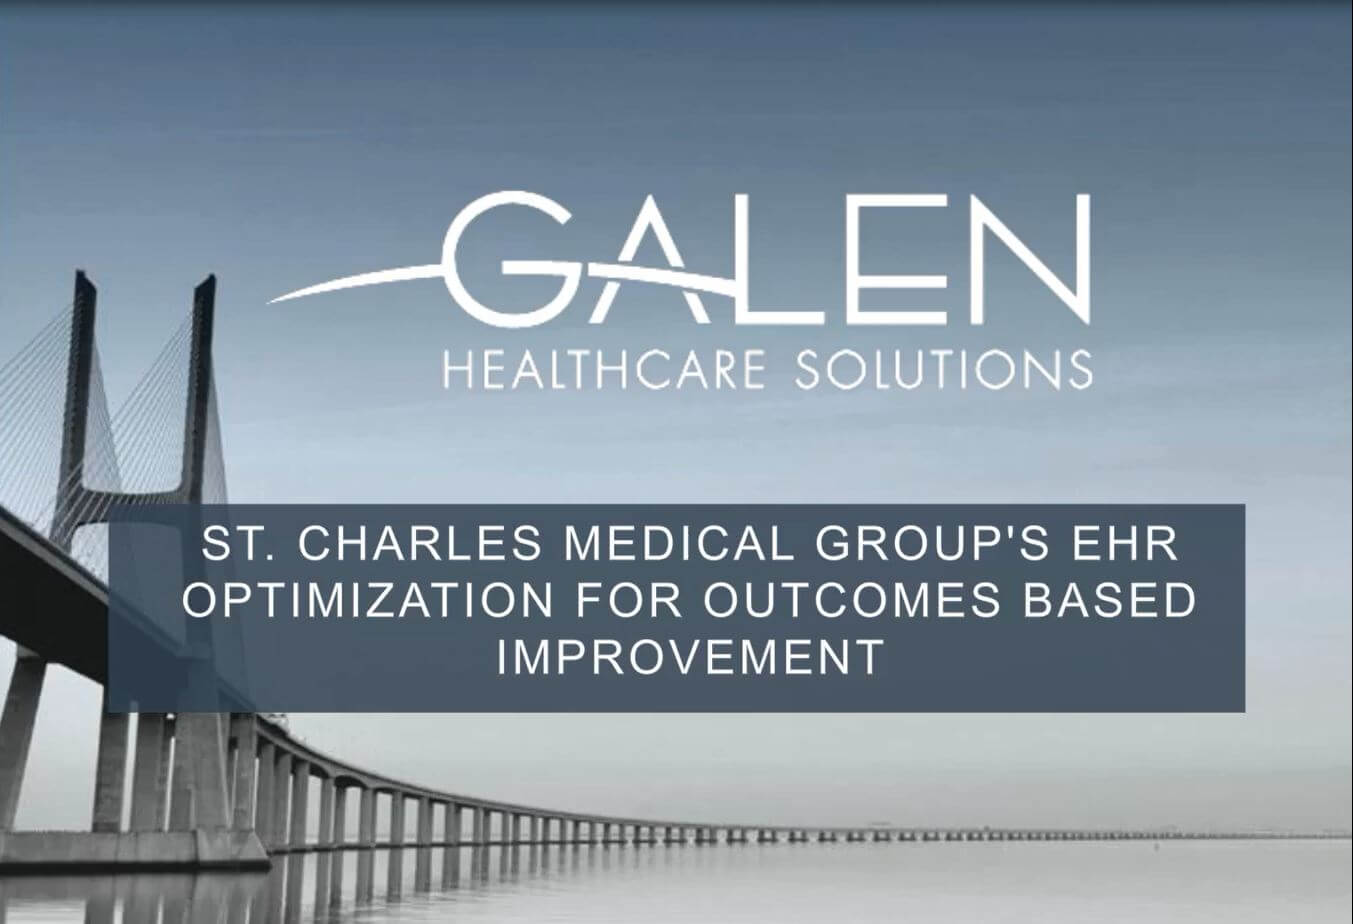 St Charles Medical Groups EHR Optimization Outcomes